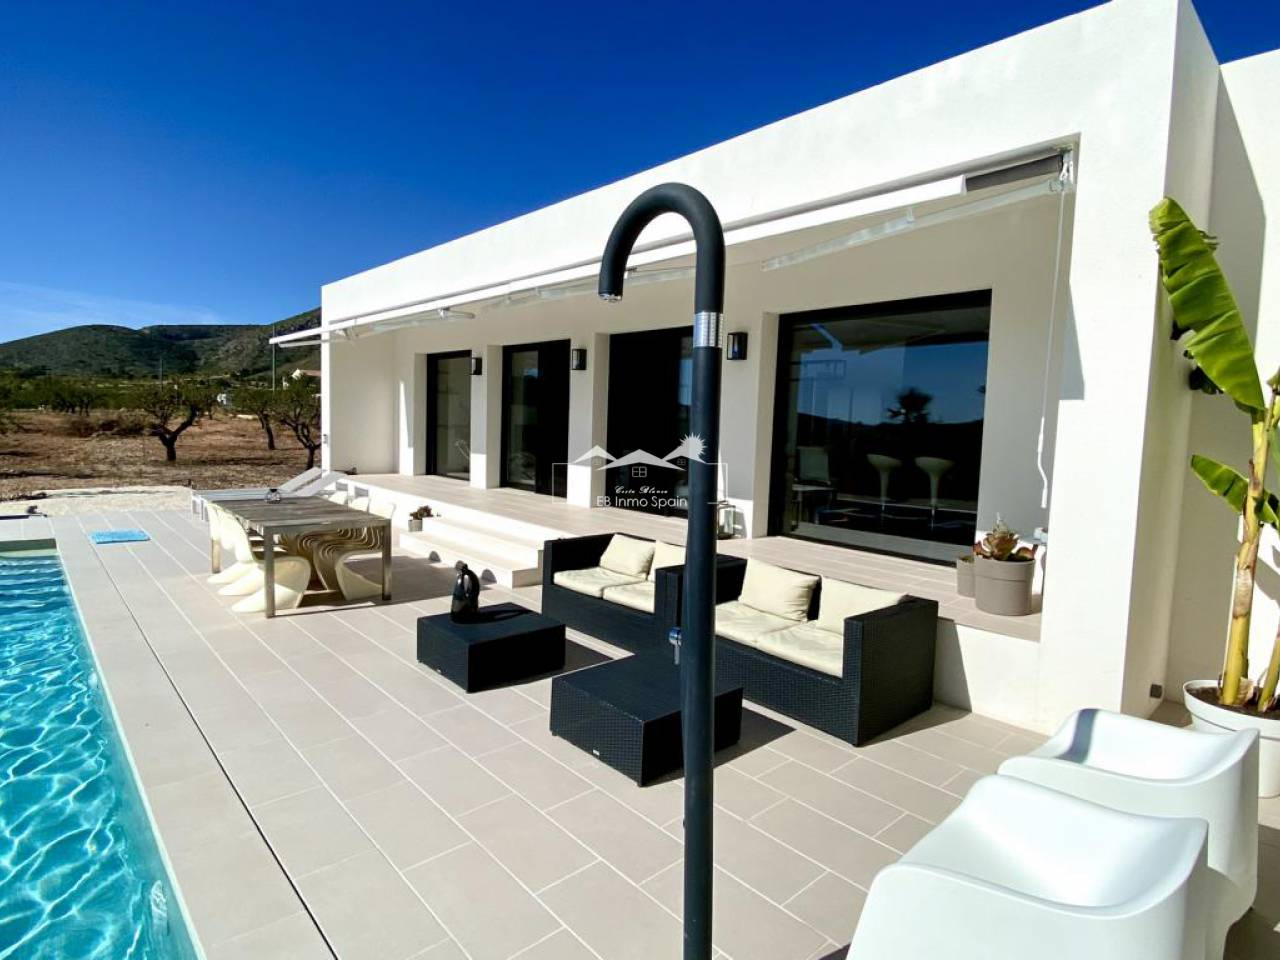 Nouvelle construction - Villa - Hondon De Las Nieves